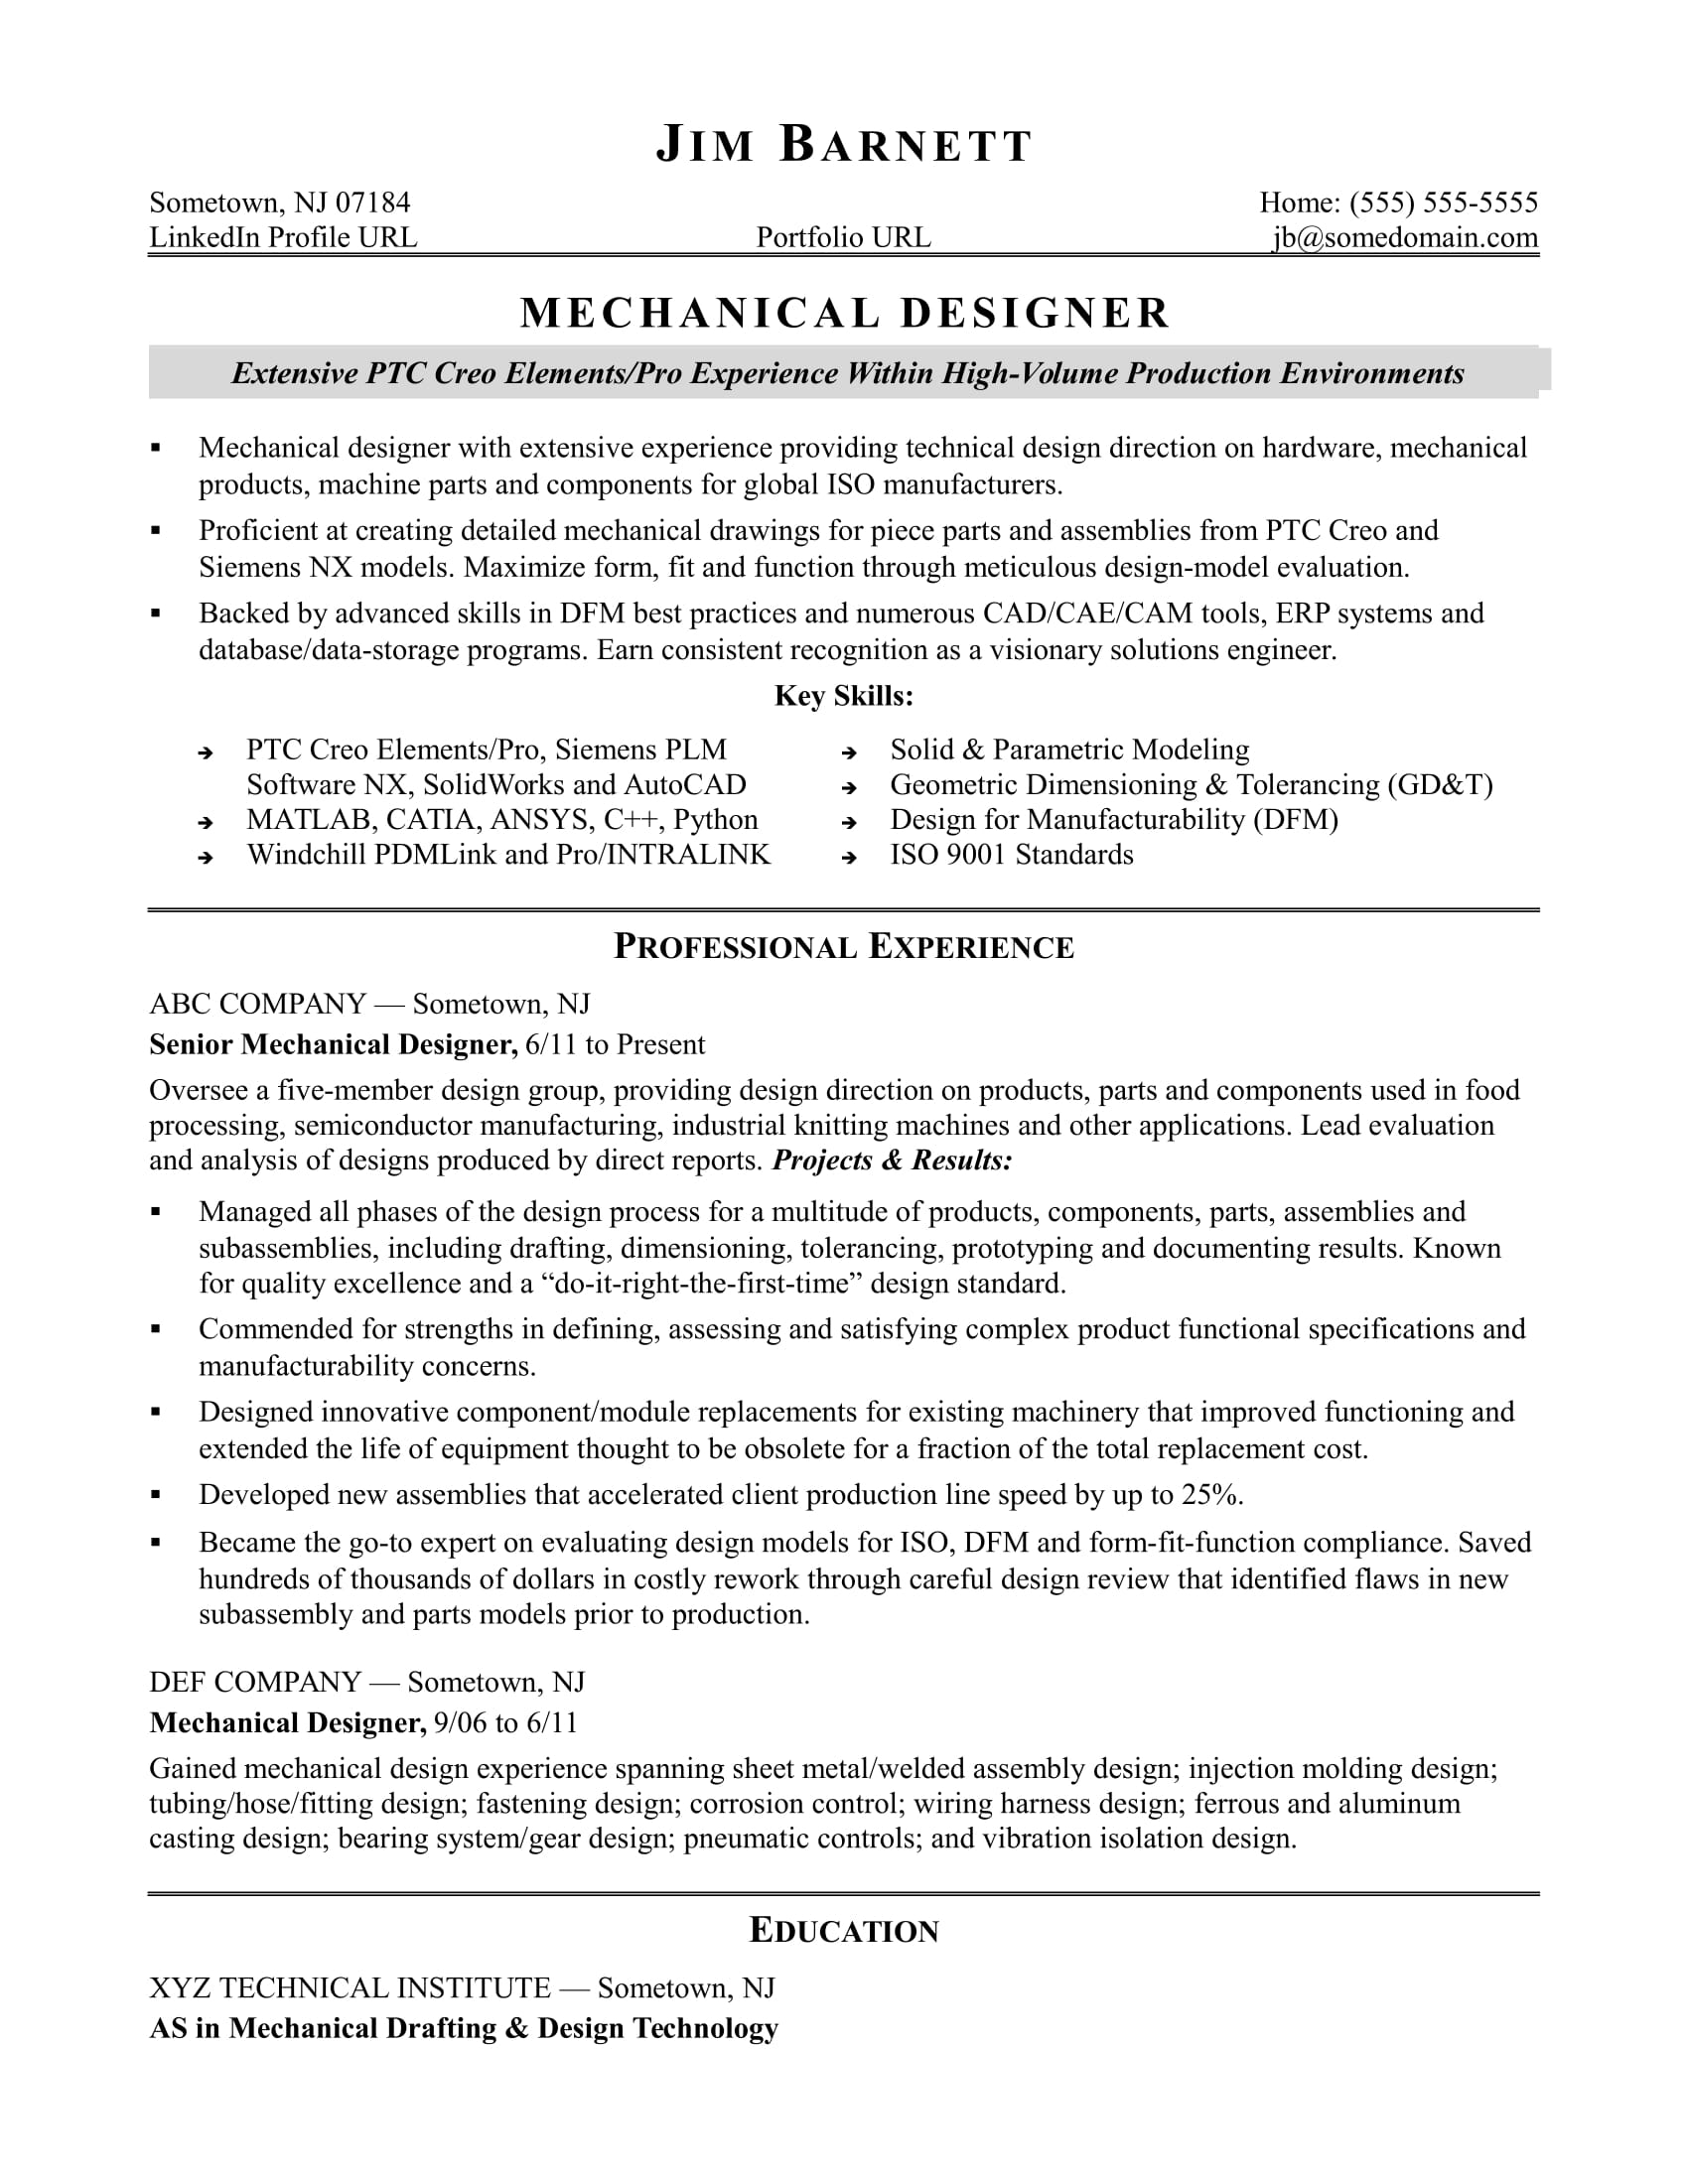 2 Years Experience Mechanical Engineer Resume Sample Resume For An Experienced Mechanical Designer